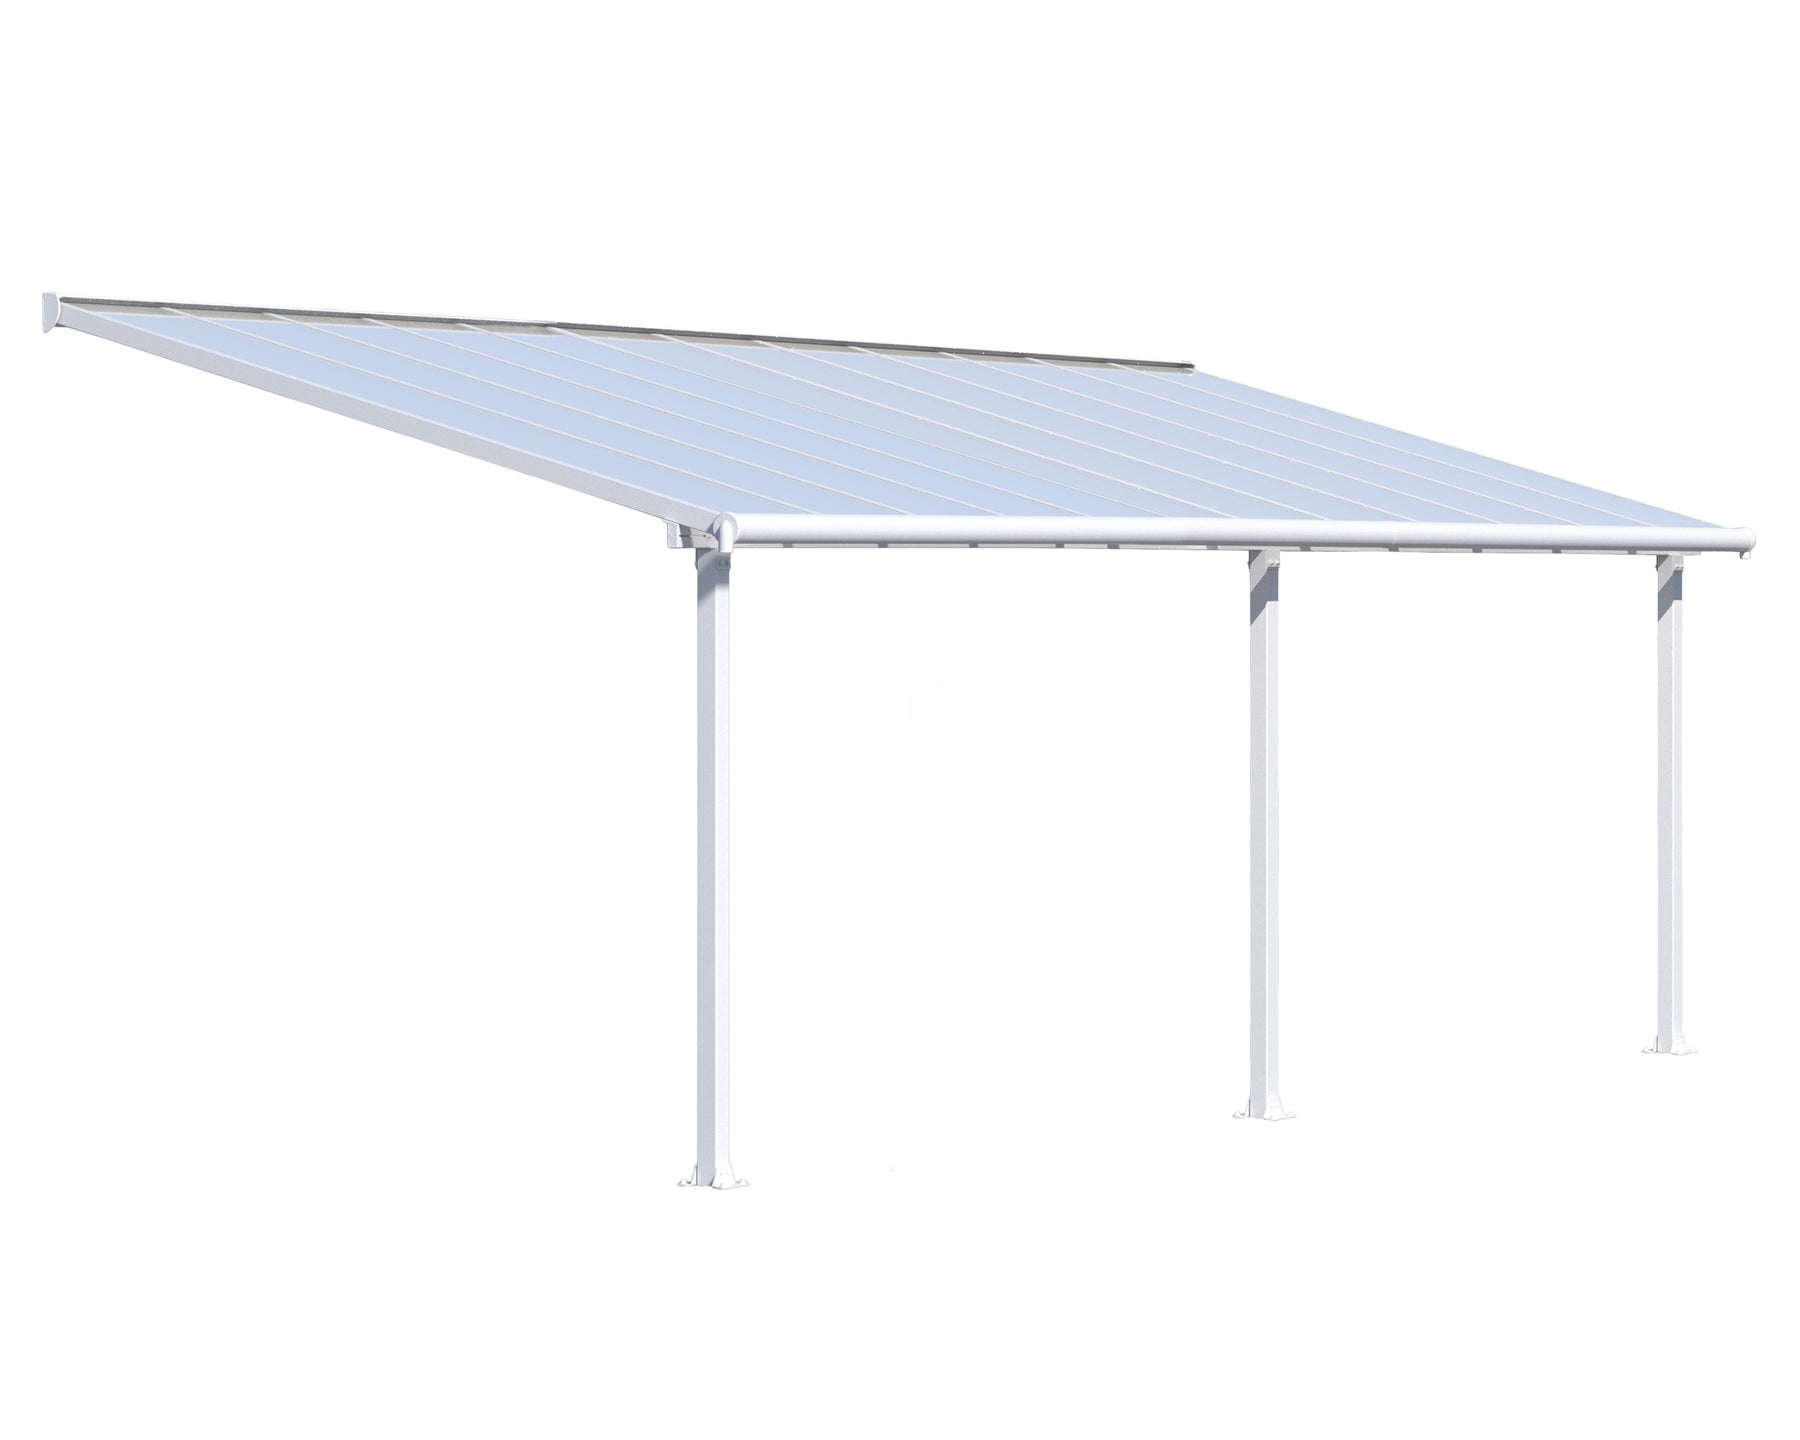 Palram Olympia Patio Covers, White Size - 10' x 24':Tuff Nest